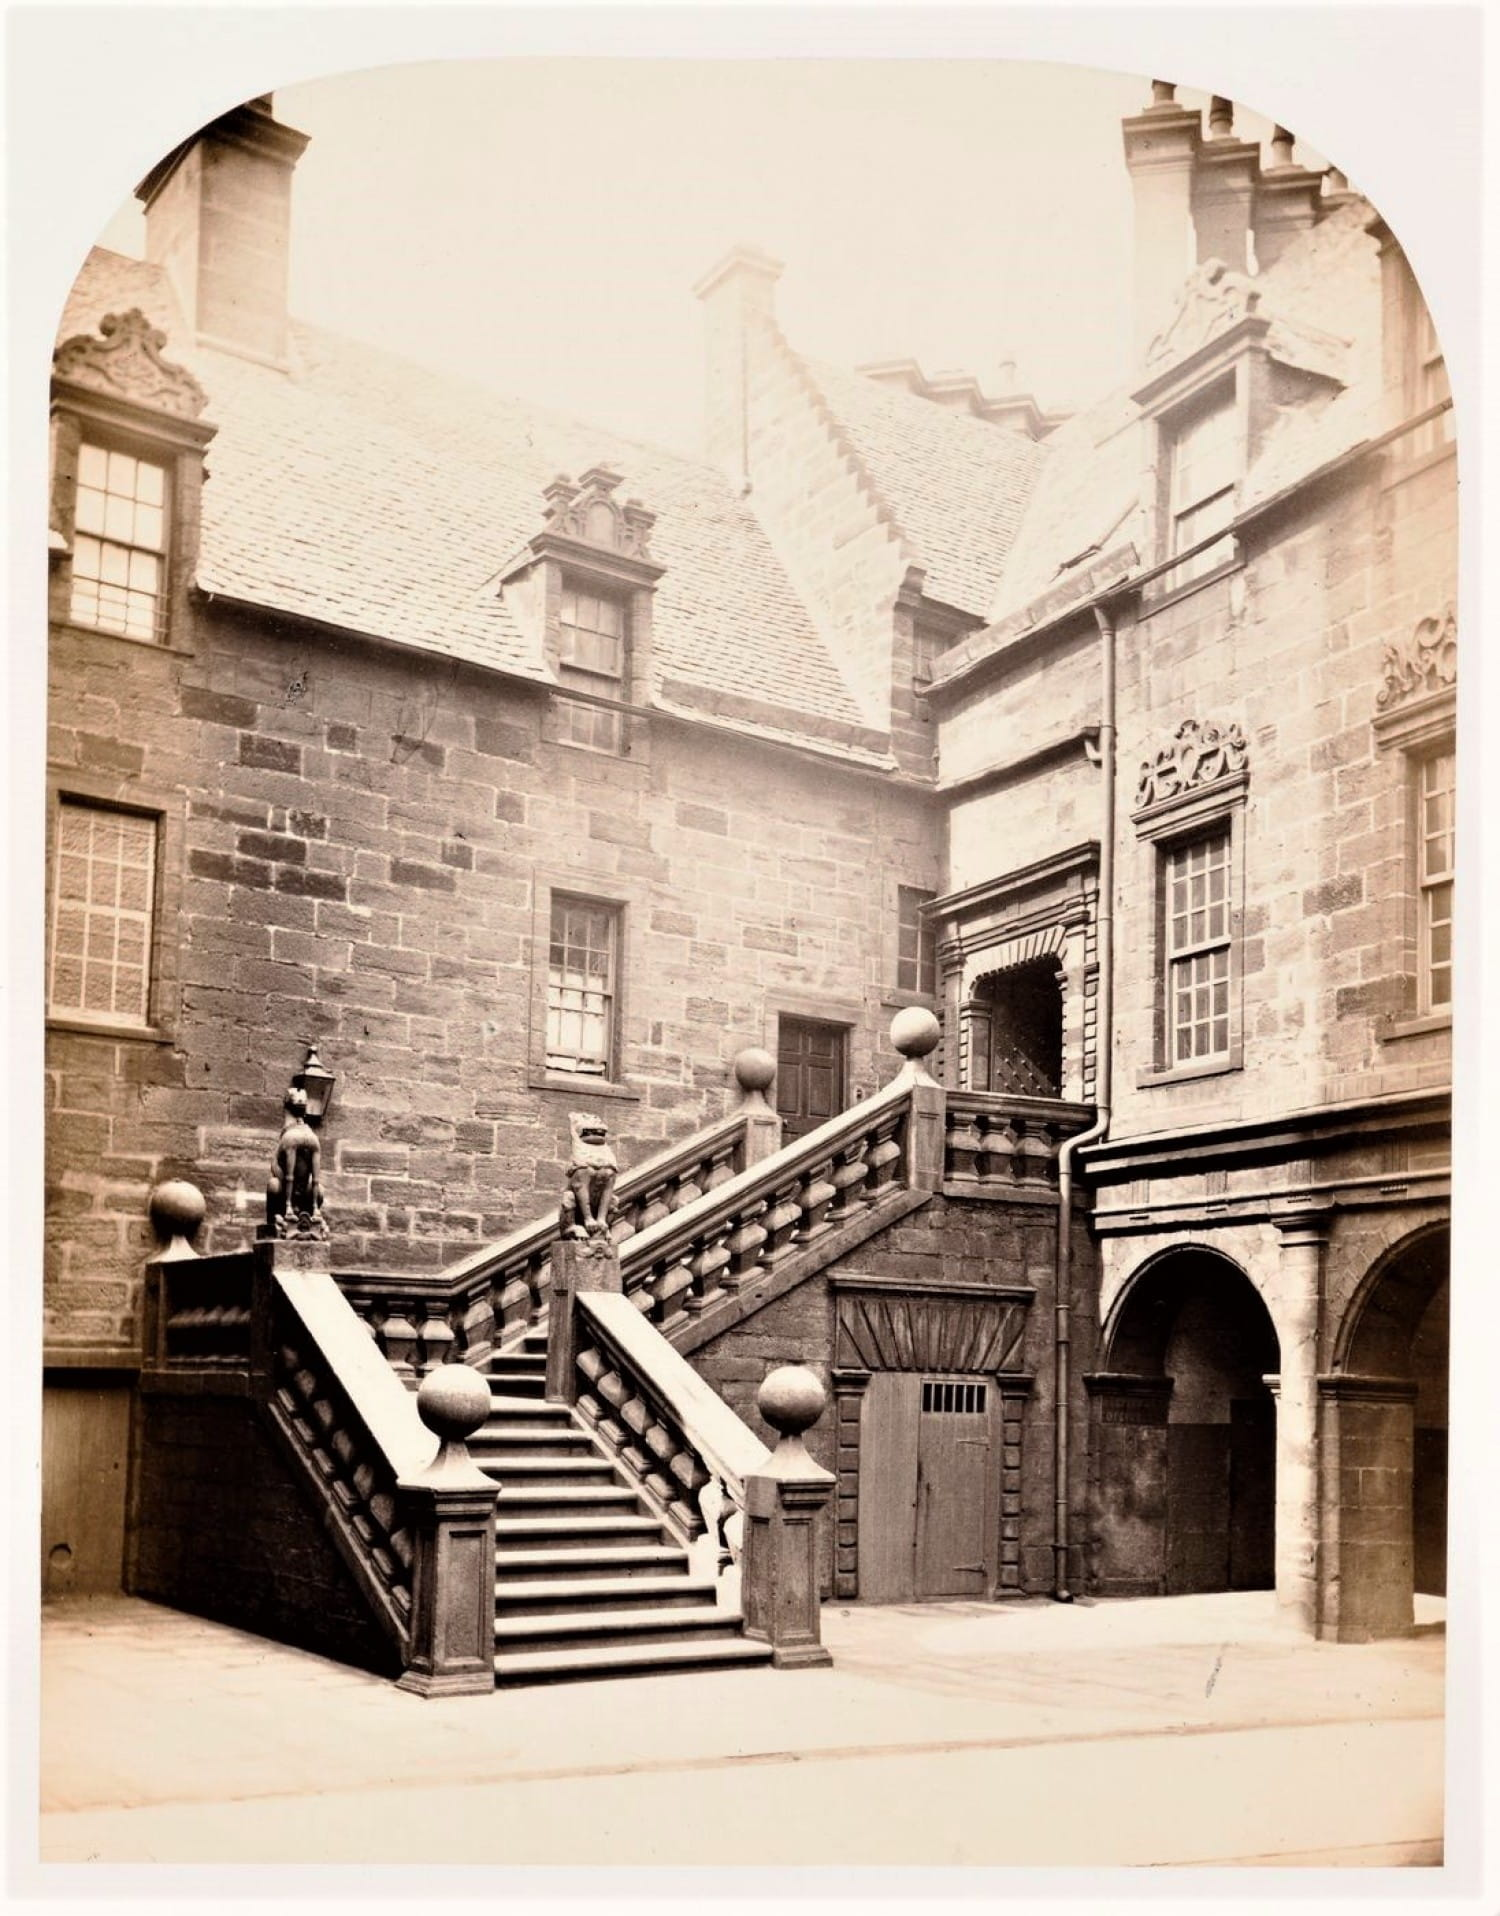 The Lion and Unicorn Staircase, at the old Glasgow University (Thomas Annan, 1866)